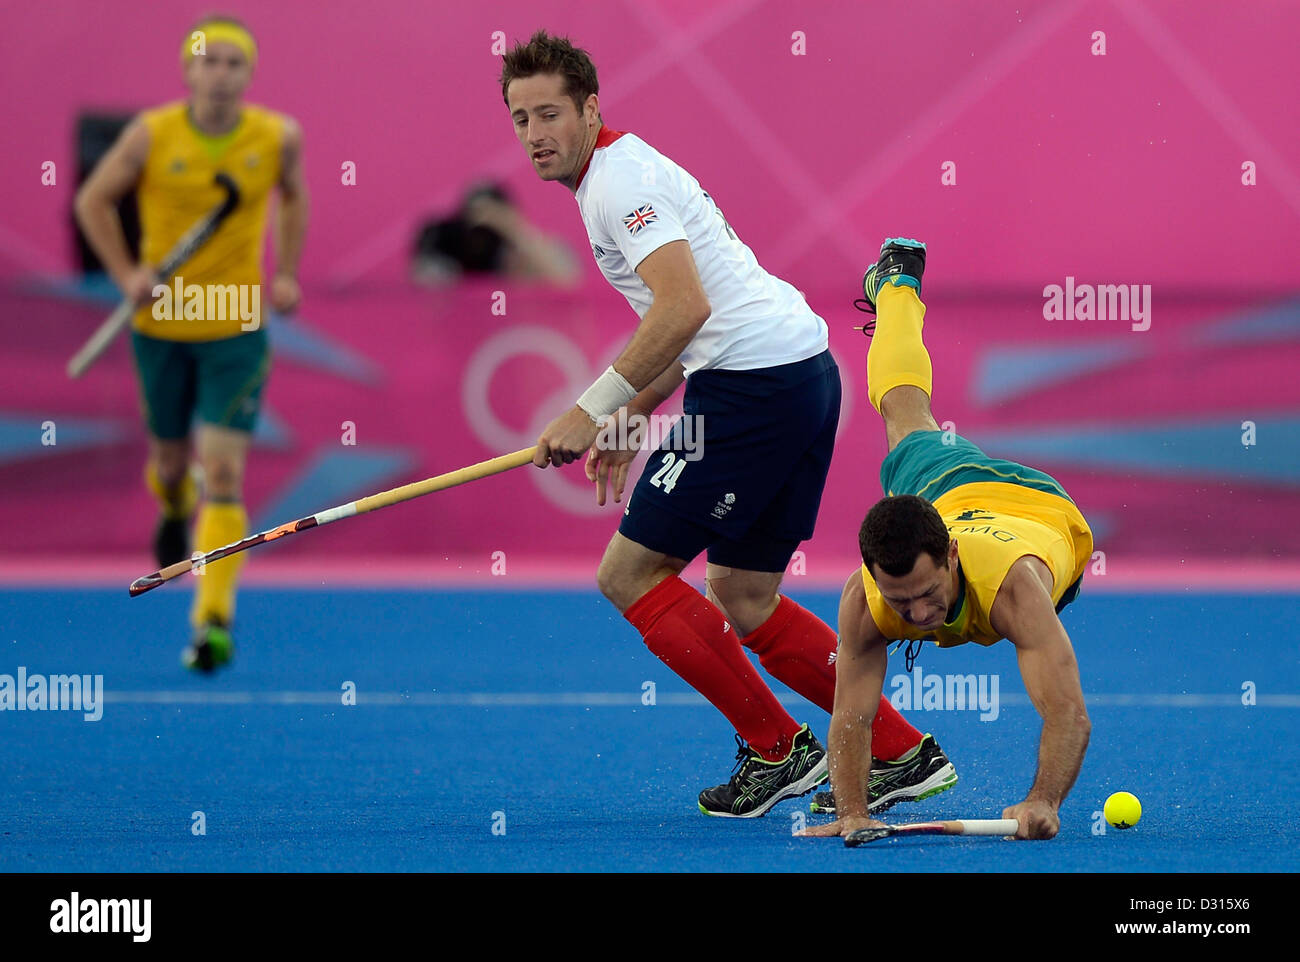 Australia's Jamie Dwyer falls after a tckle from Britain's Iain Lewers. Hockey GBR Vs AUS - Stock Image